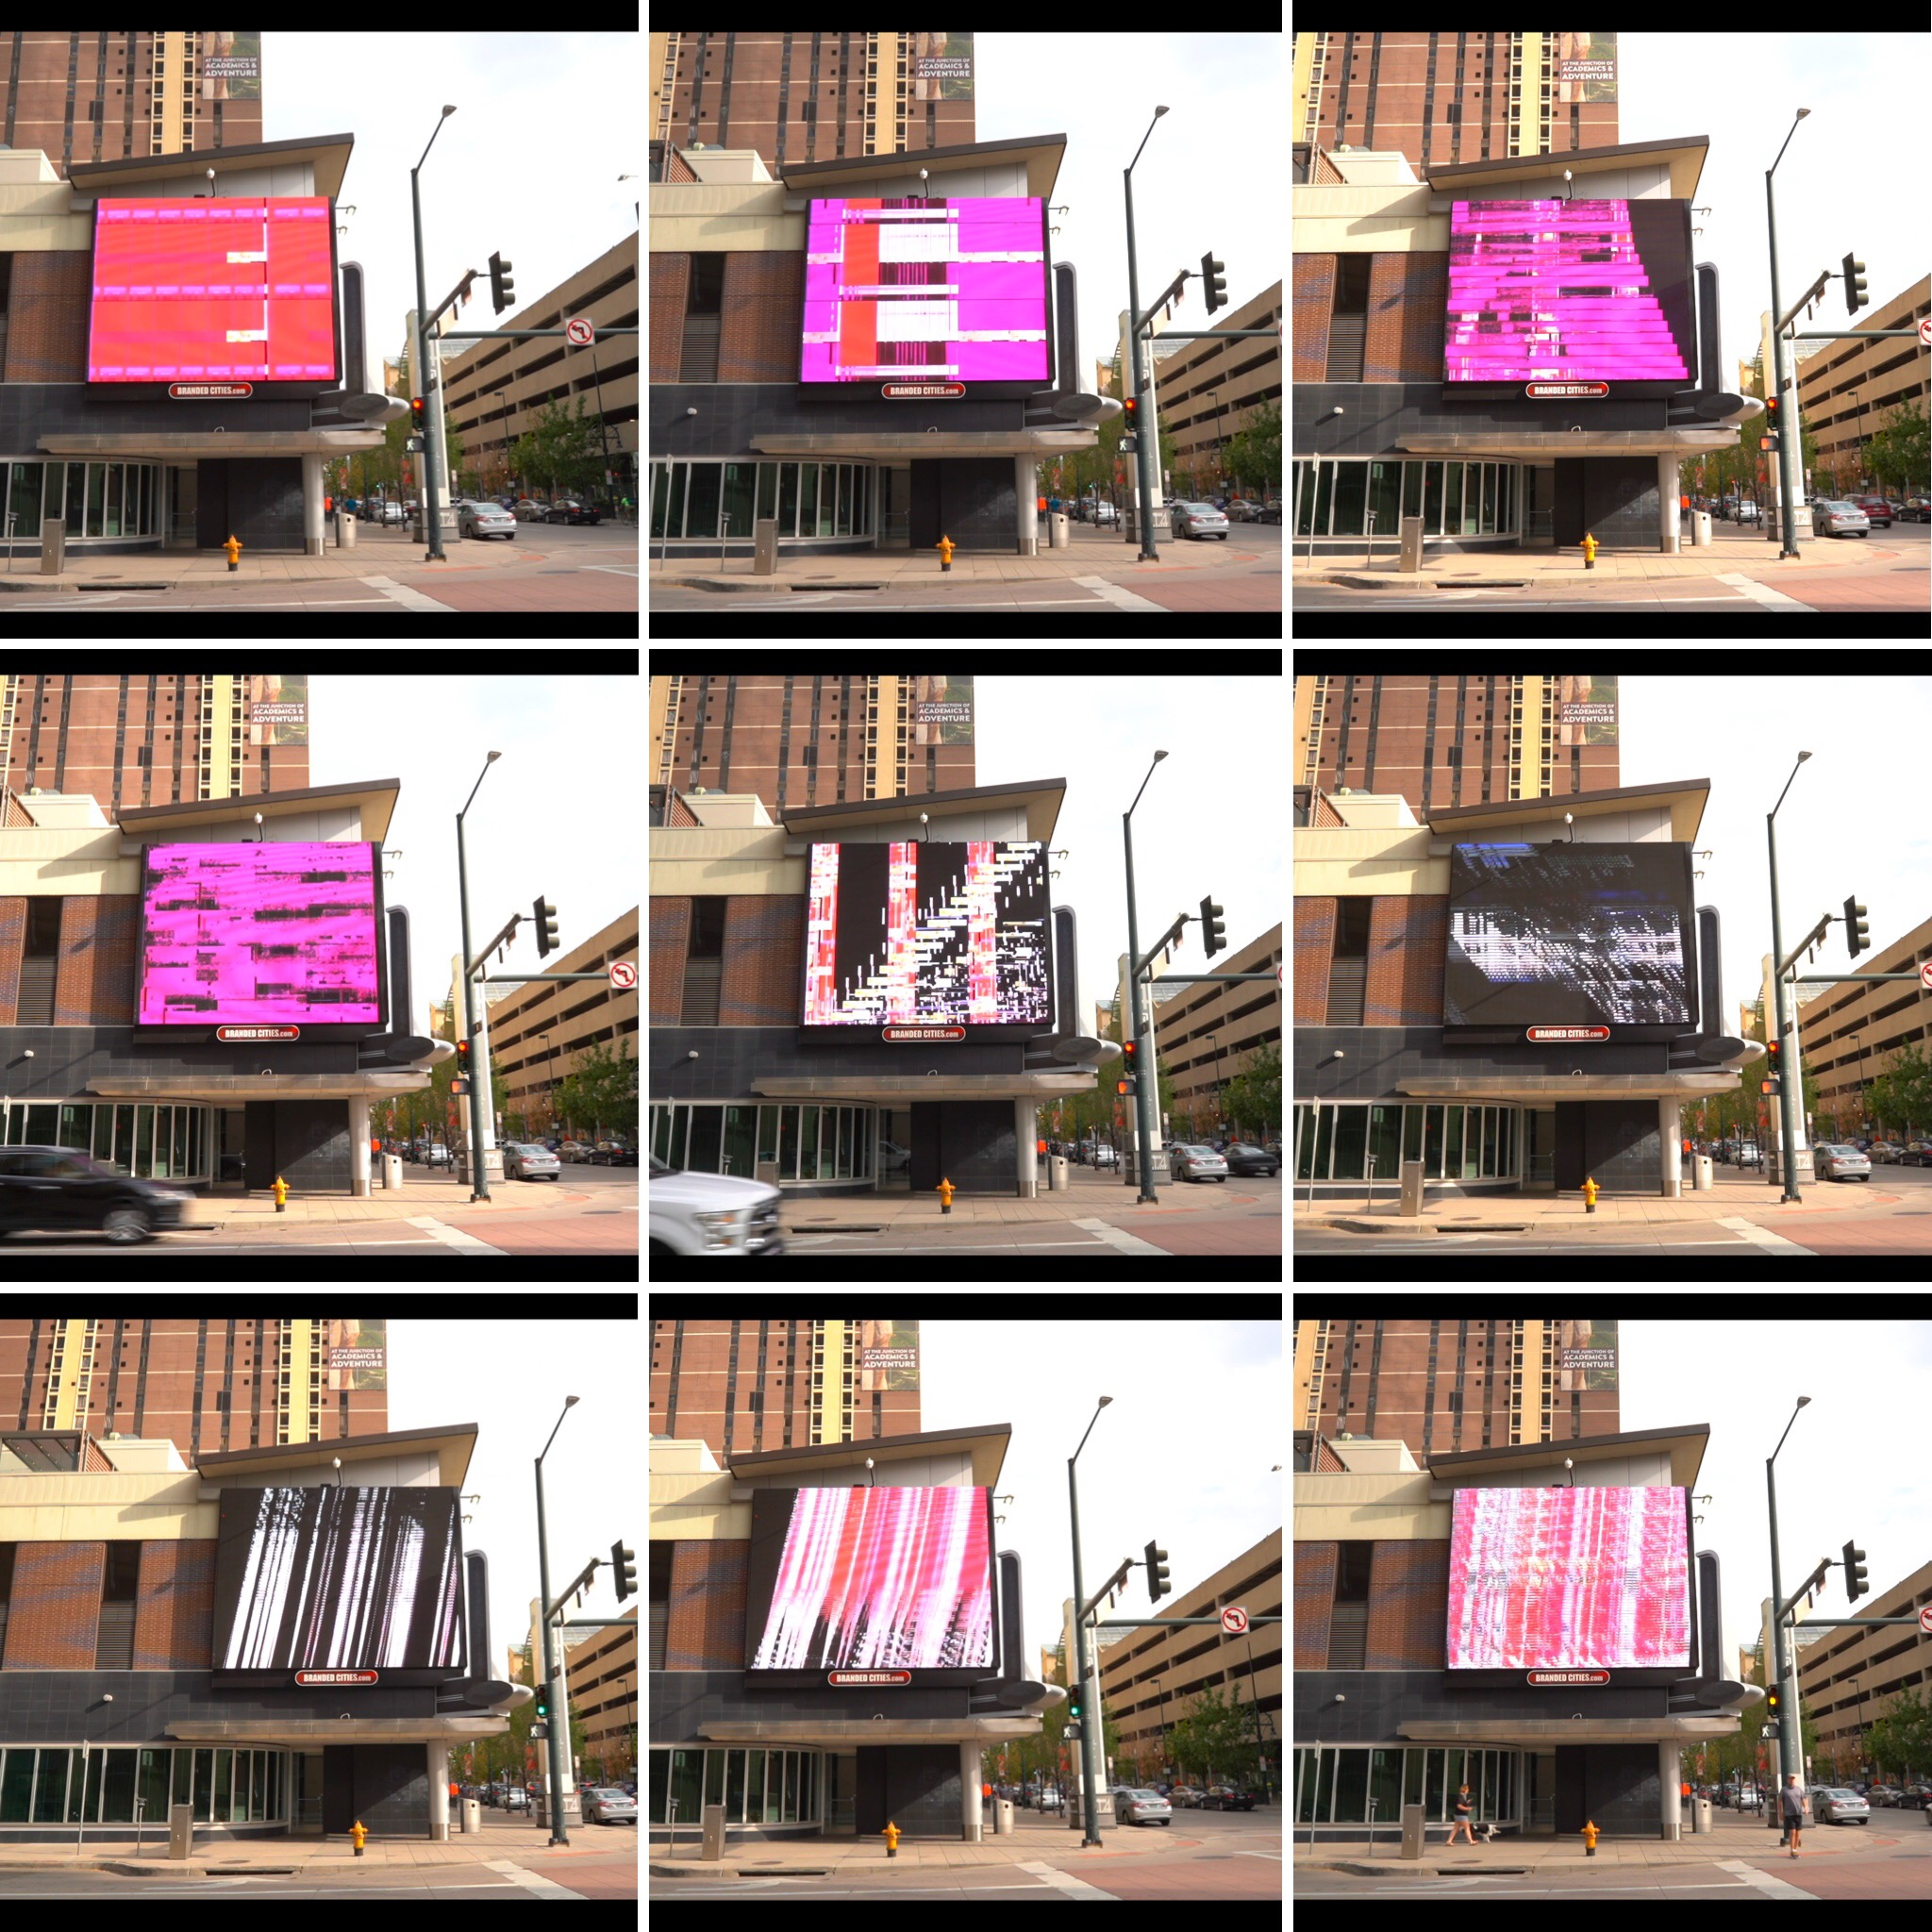 still showing installation view of weather currents on billboard